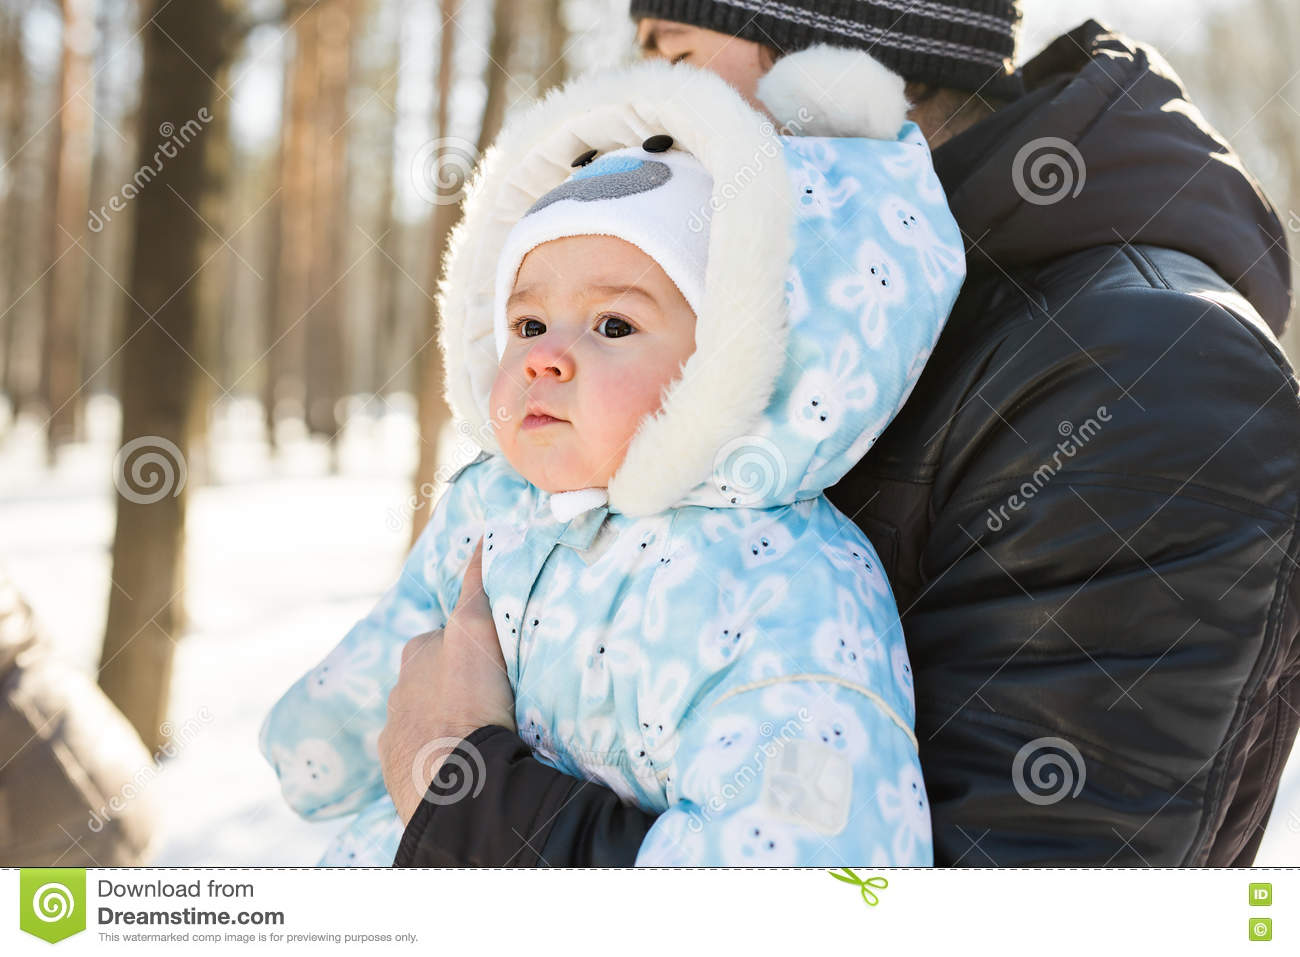 a9c41b8e70e7 Cute Baby At Winter Background Stock Photo - Image of smile ...